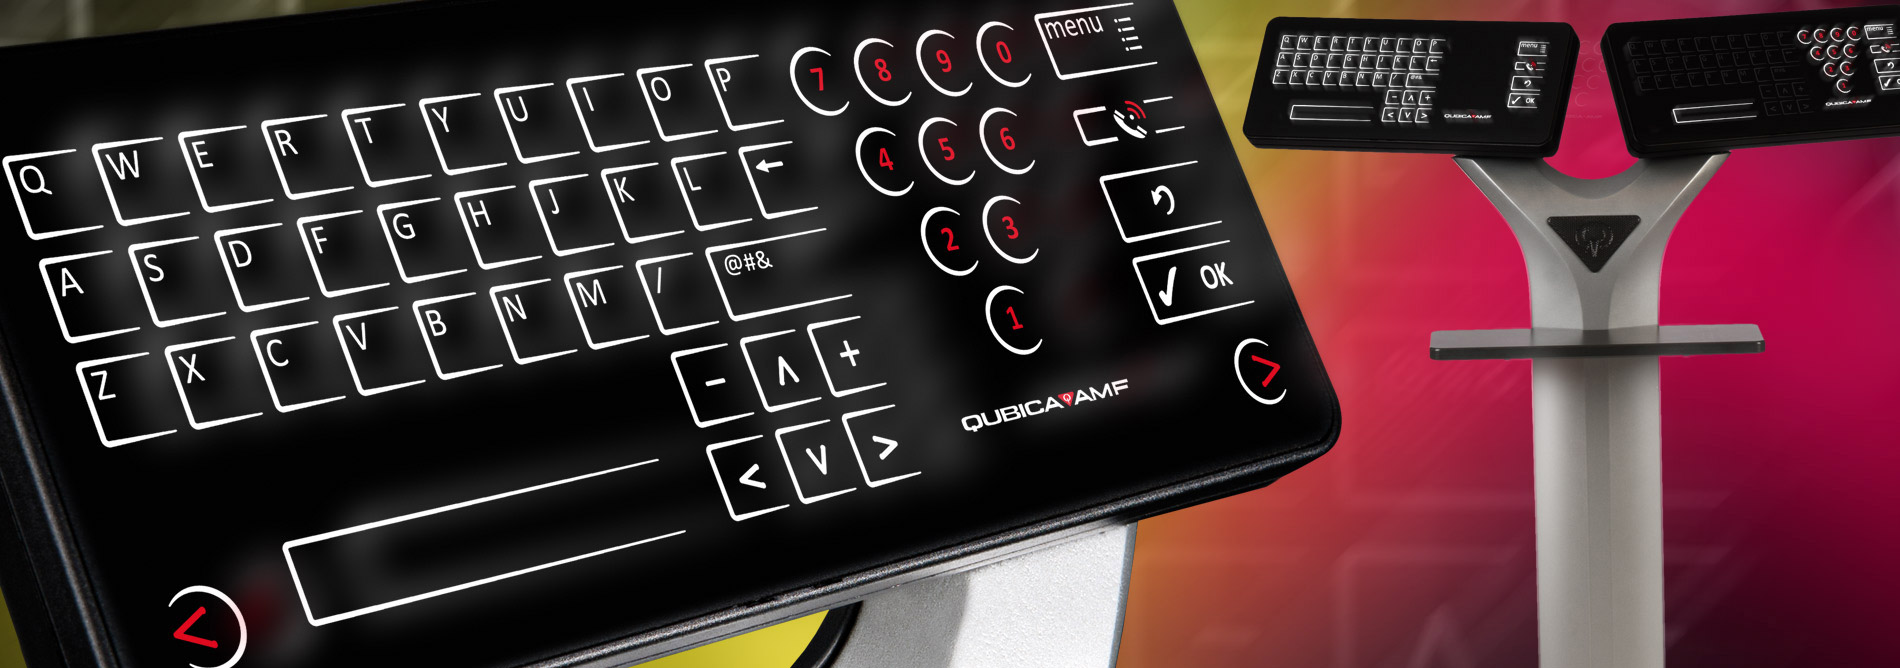 Bowling-QubicaAMF-score-bowler-consoles-easykey-banner.jpg